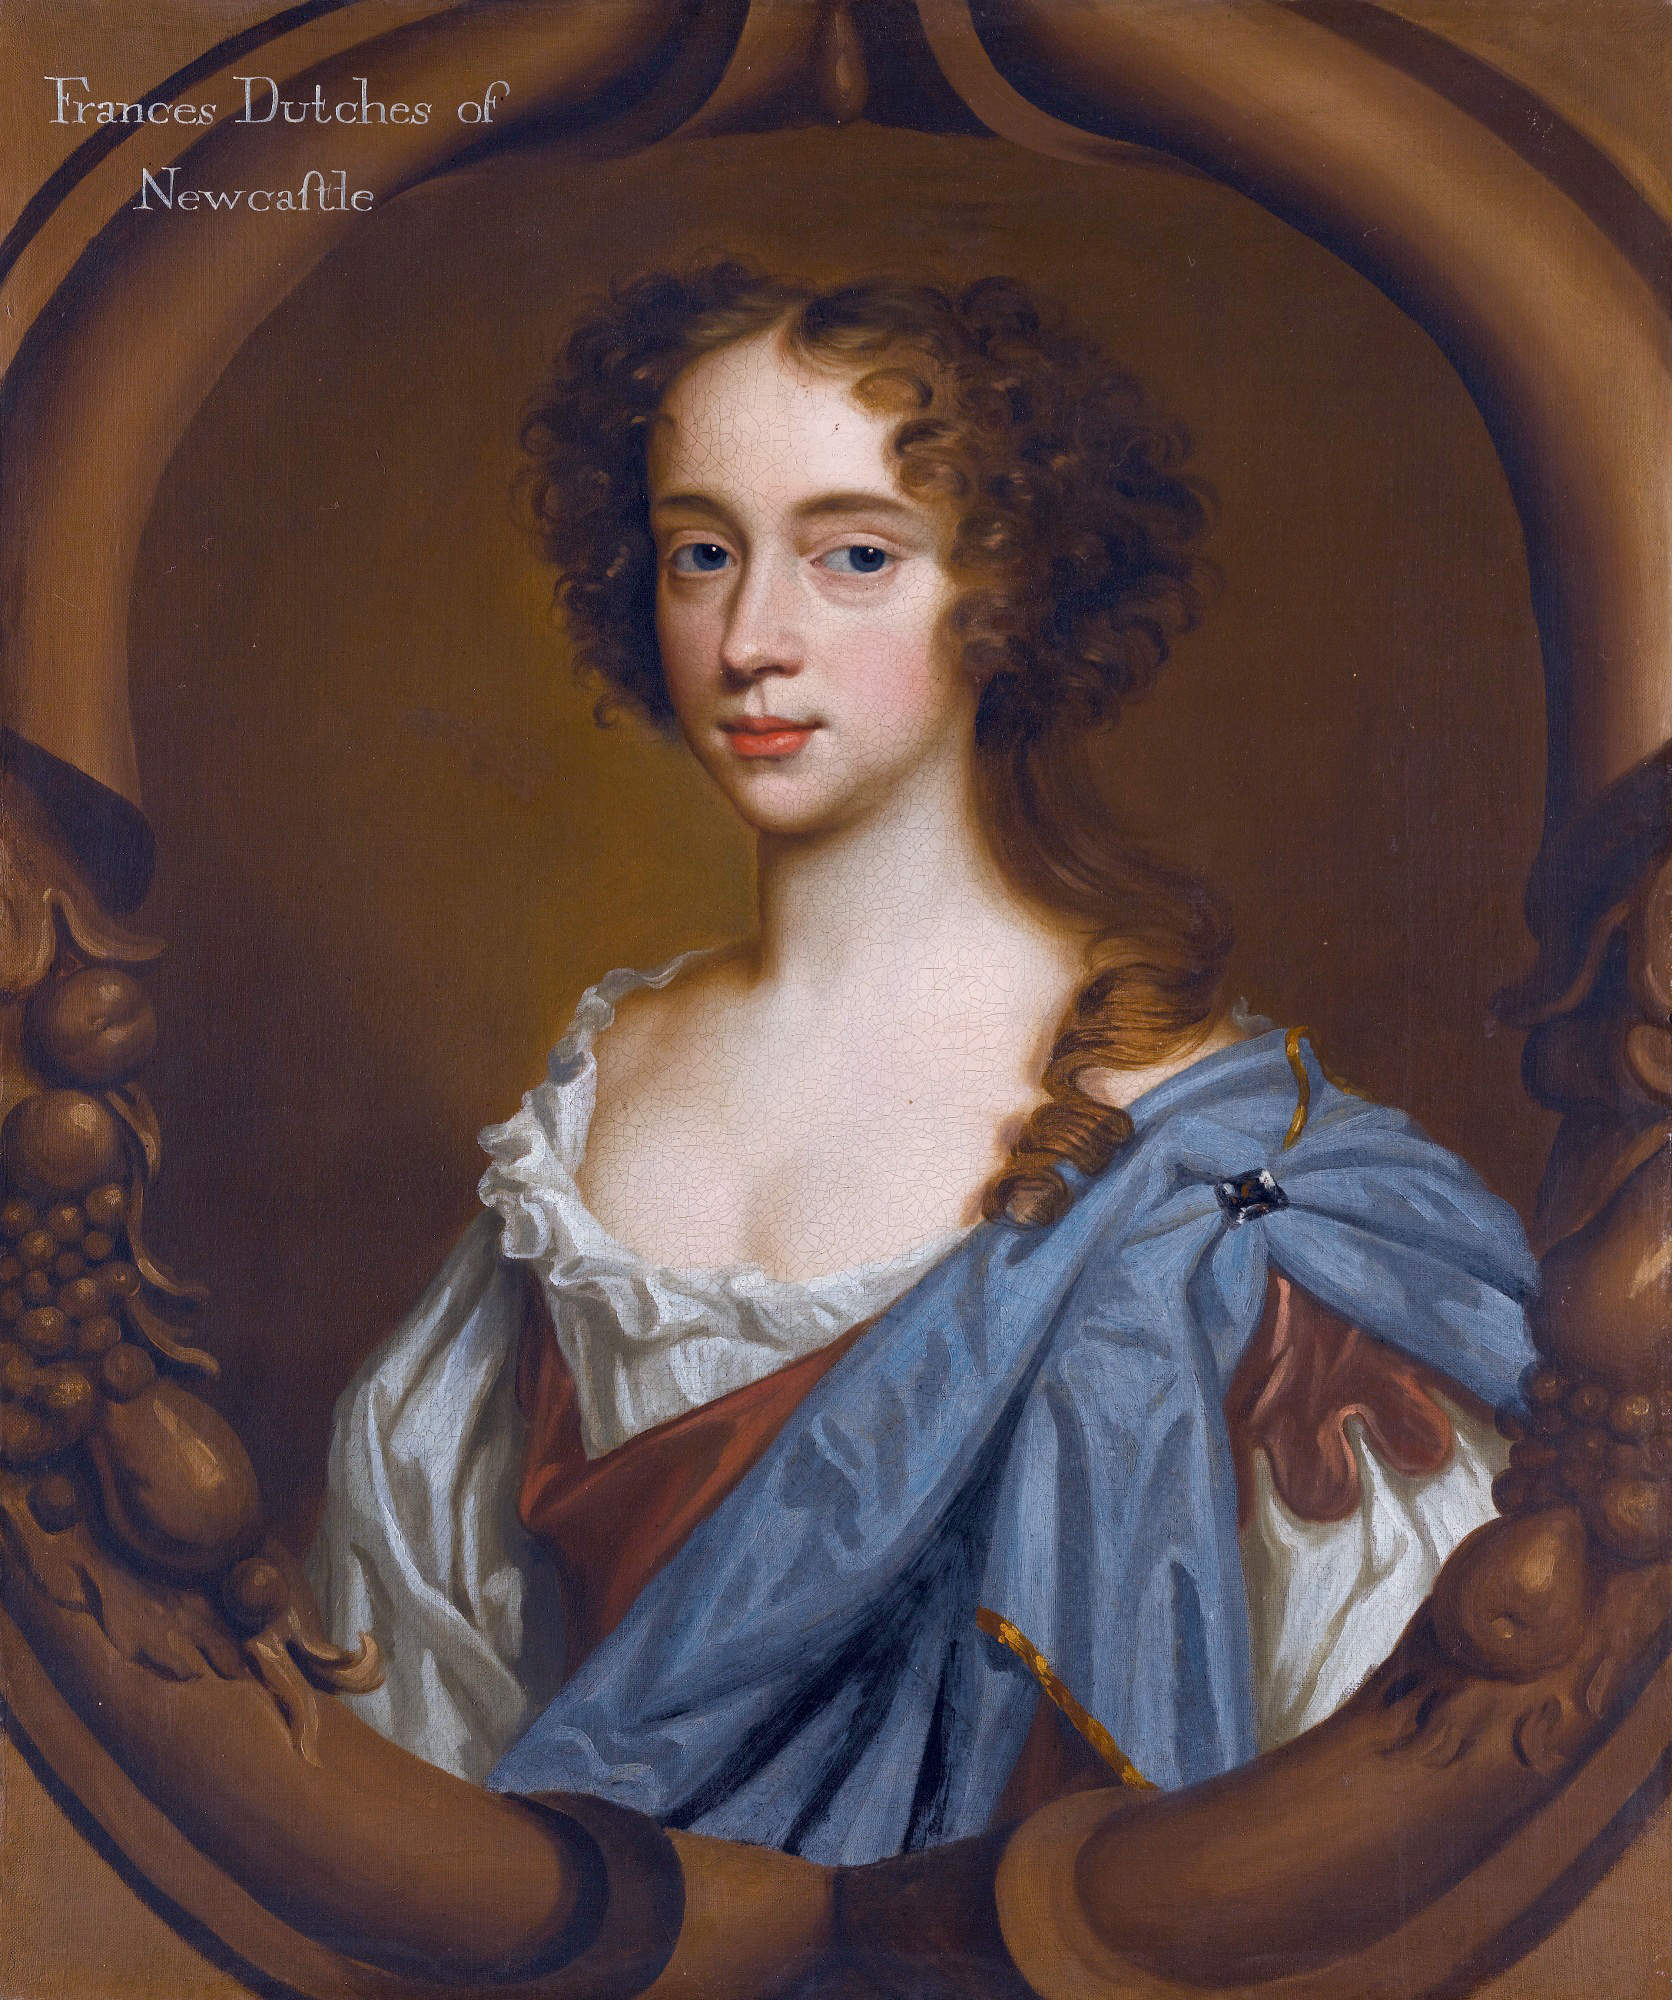 Opening the cracks: revisiting the 17th century woman writer Margaret Cavendish